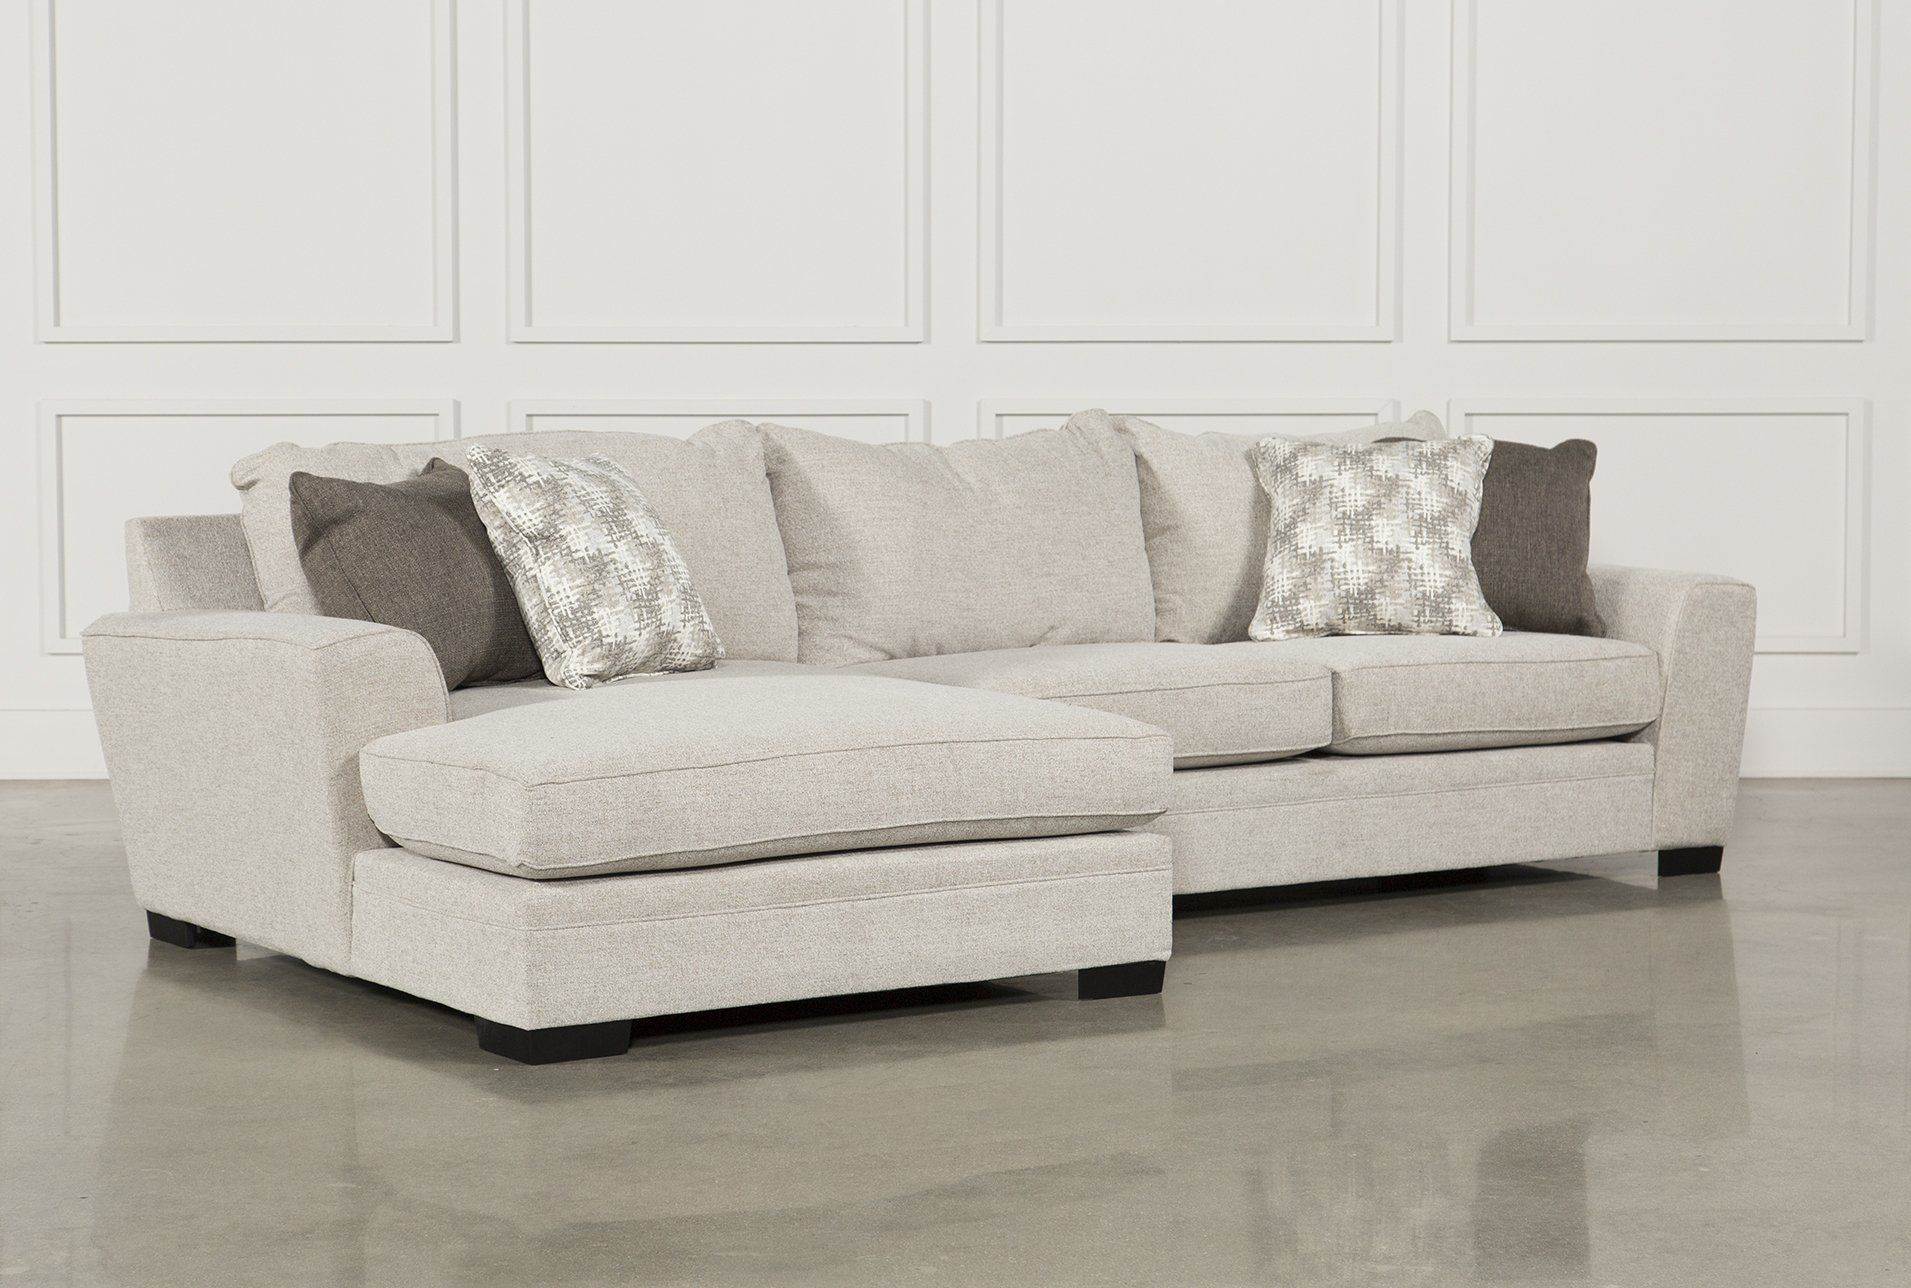 Delano 2 Piece Sectional Wlaf Oversized Chaise Sectional inside sizing 1911 X 1288